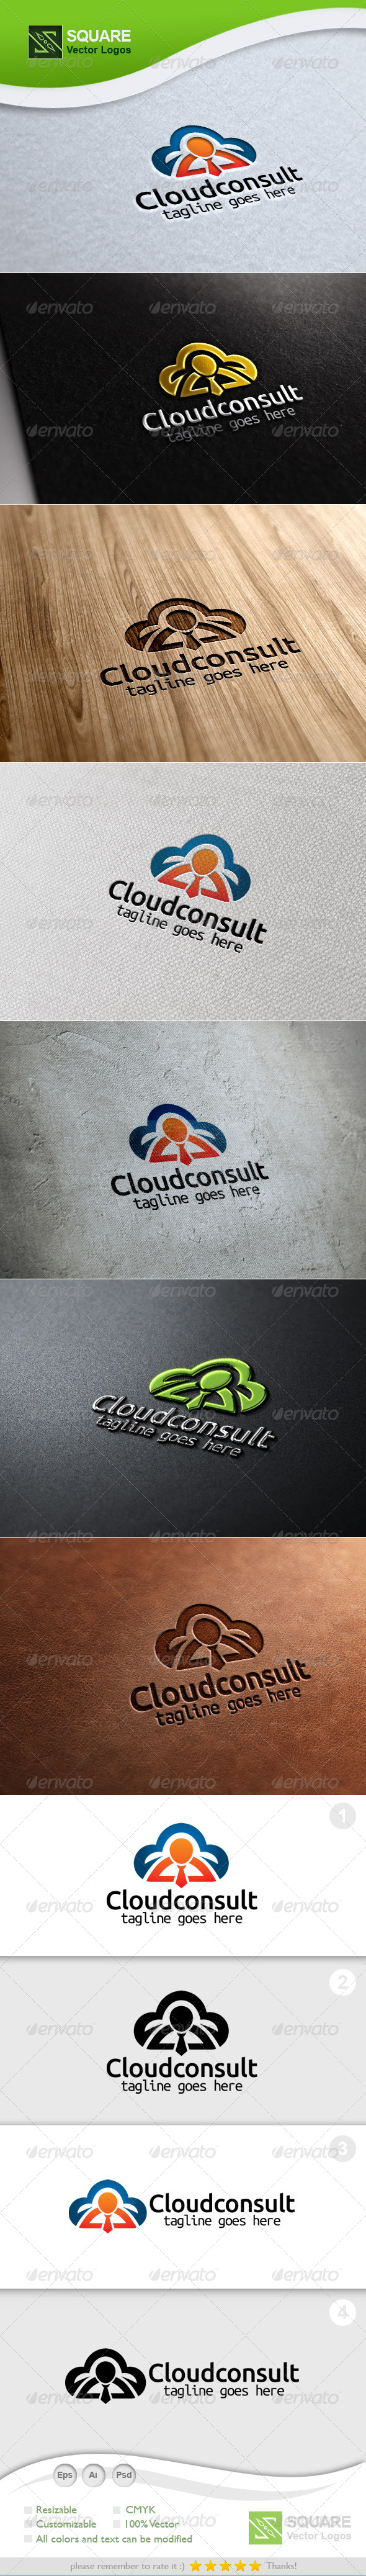 Cloud, Consultancy Vector Logo Template - Symbols Logo Templates